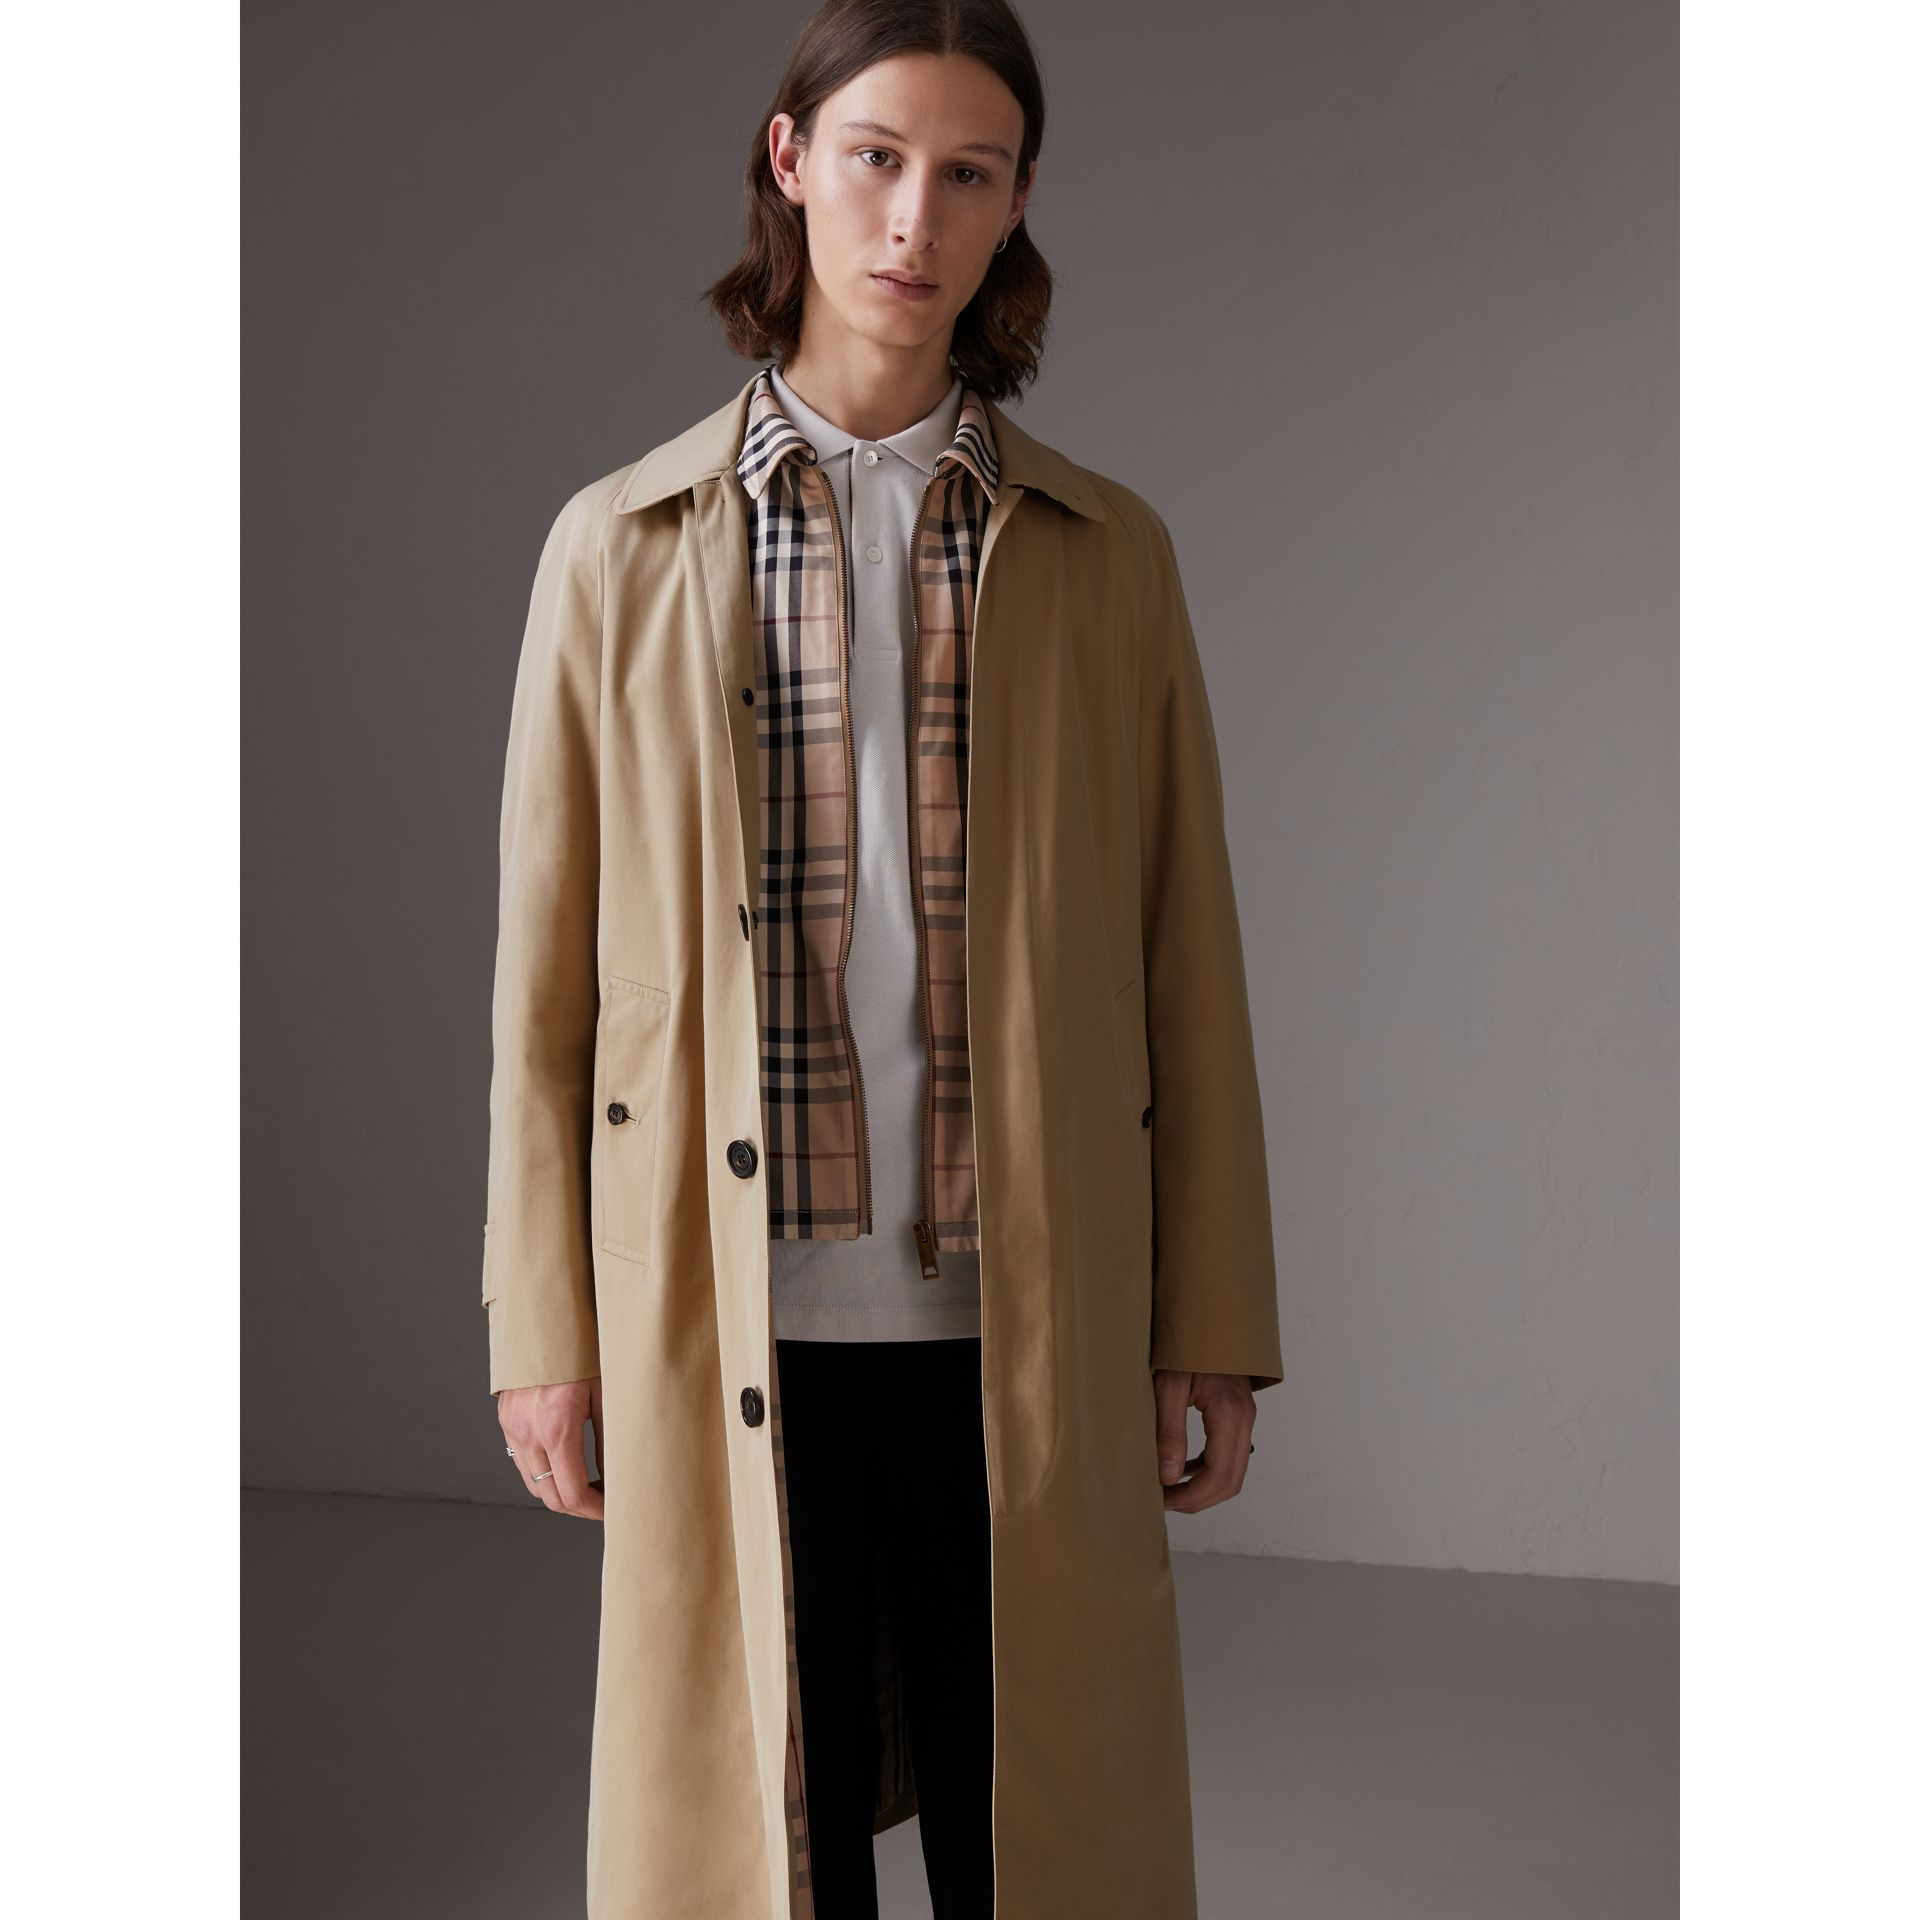 Gosha x Burberry Reconstructed Car Coat in Honey | Burberry - gallery image 2